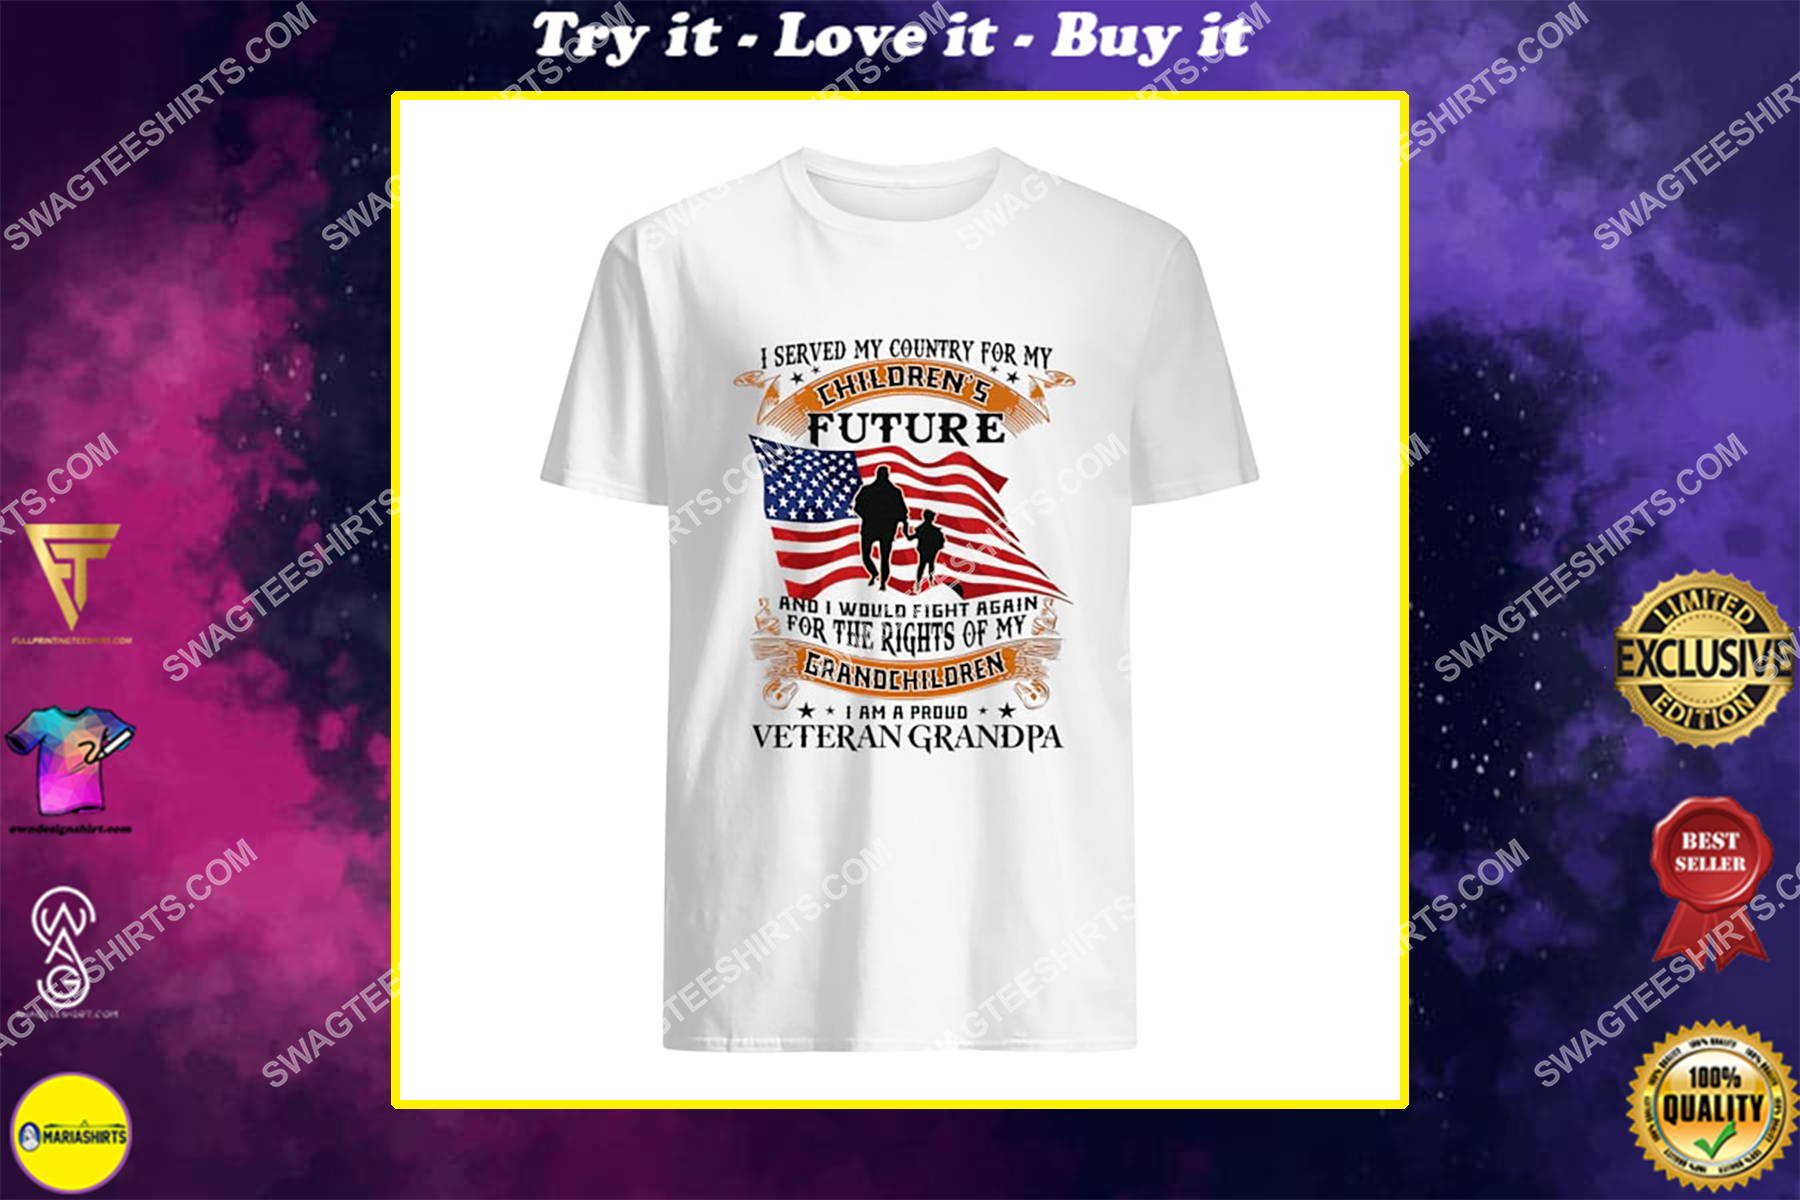 i served my country for my children's future and i'd fight again for the right of my grandchildren for memorial day shirt